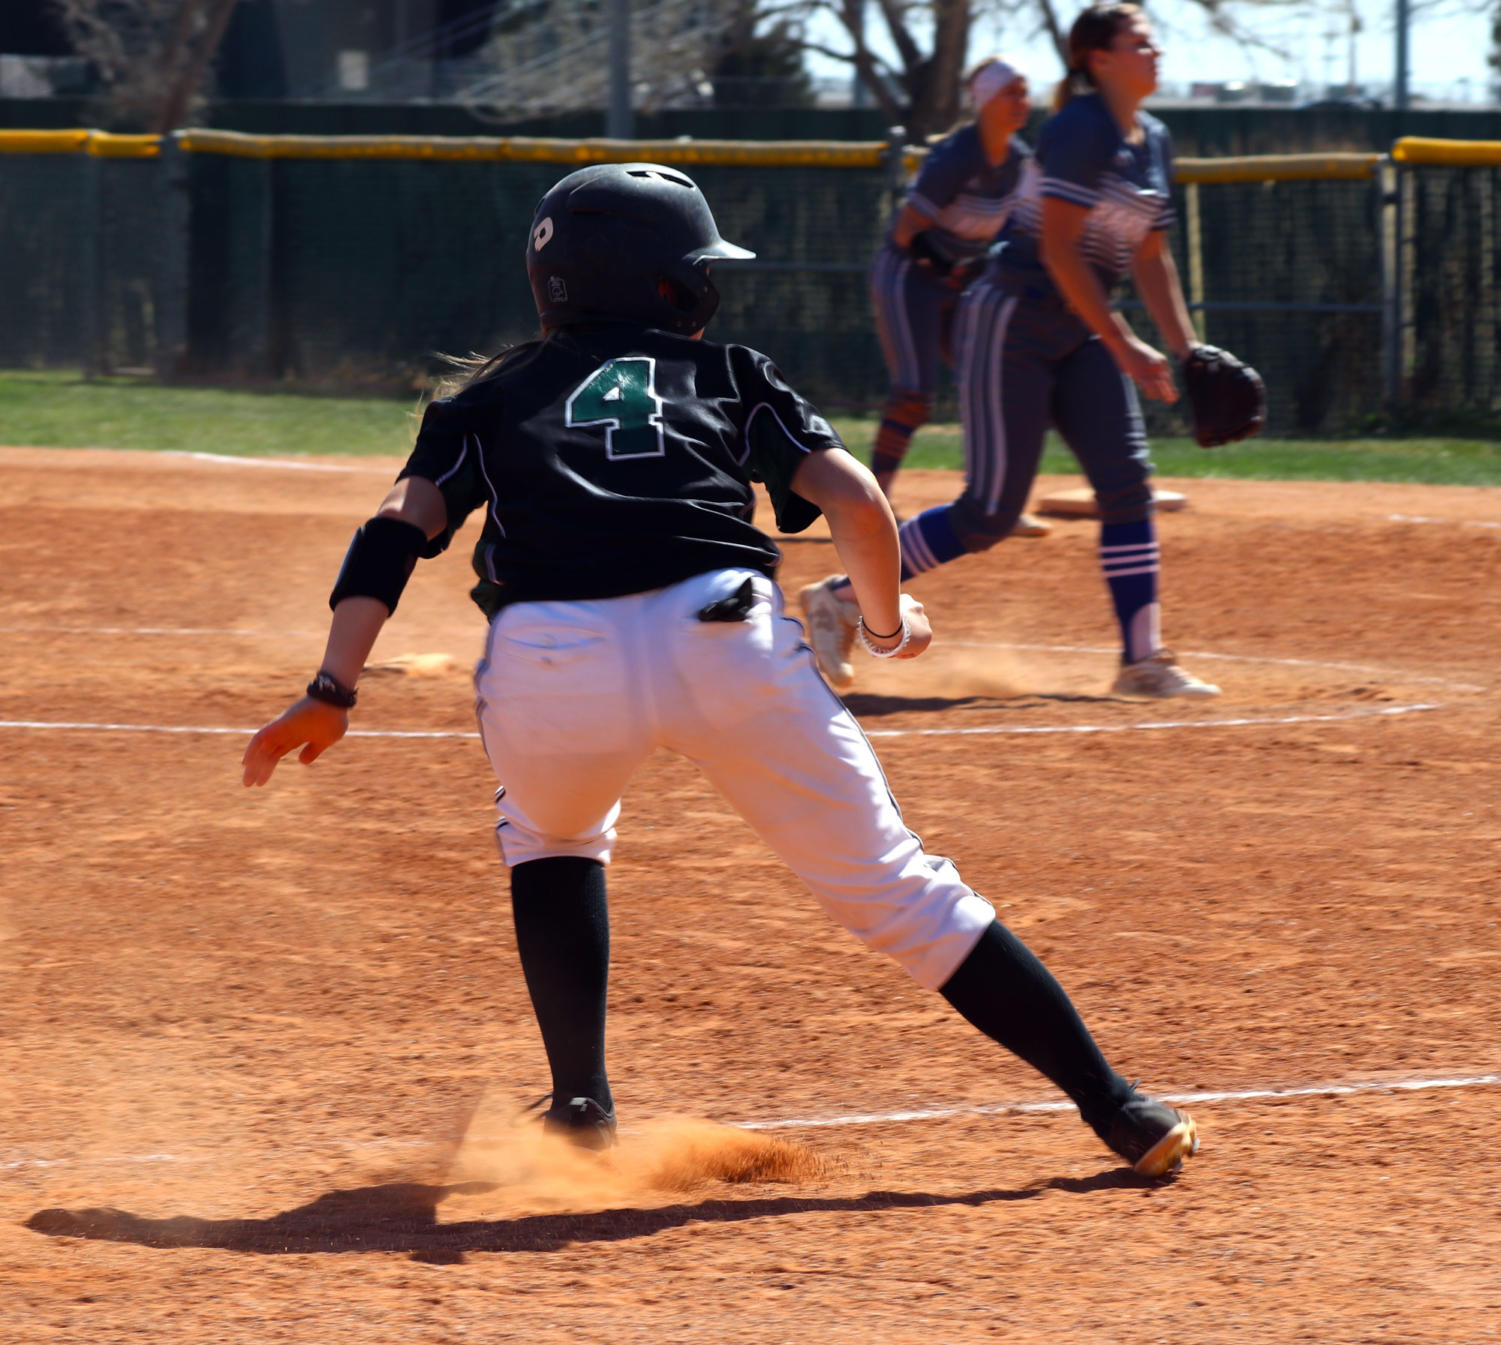 Paige+St.+Pierre%2C+sophomore+from+Maple+Ridge%2C+British+Columbia%2C+got+the+lead+off+third+base+to+see+where+the+ball+is+hit.++St.+Pierre+either+has+to+tag+up+to+third+base+or+steal+home+and+score.